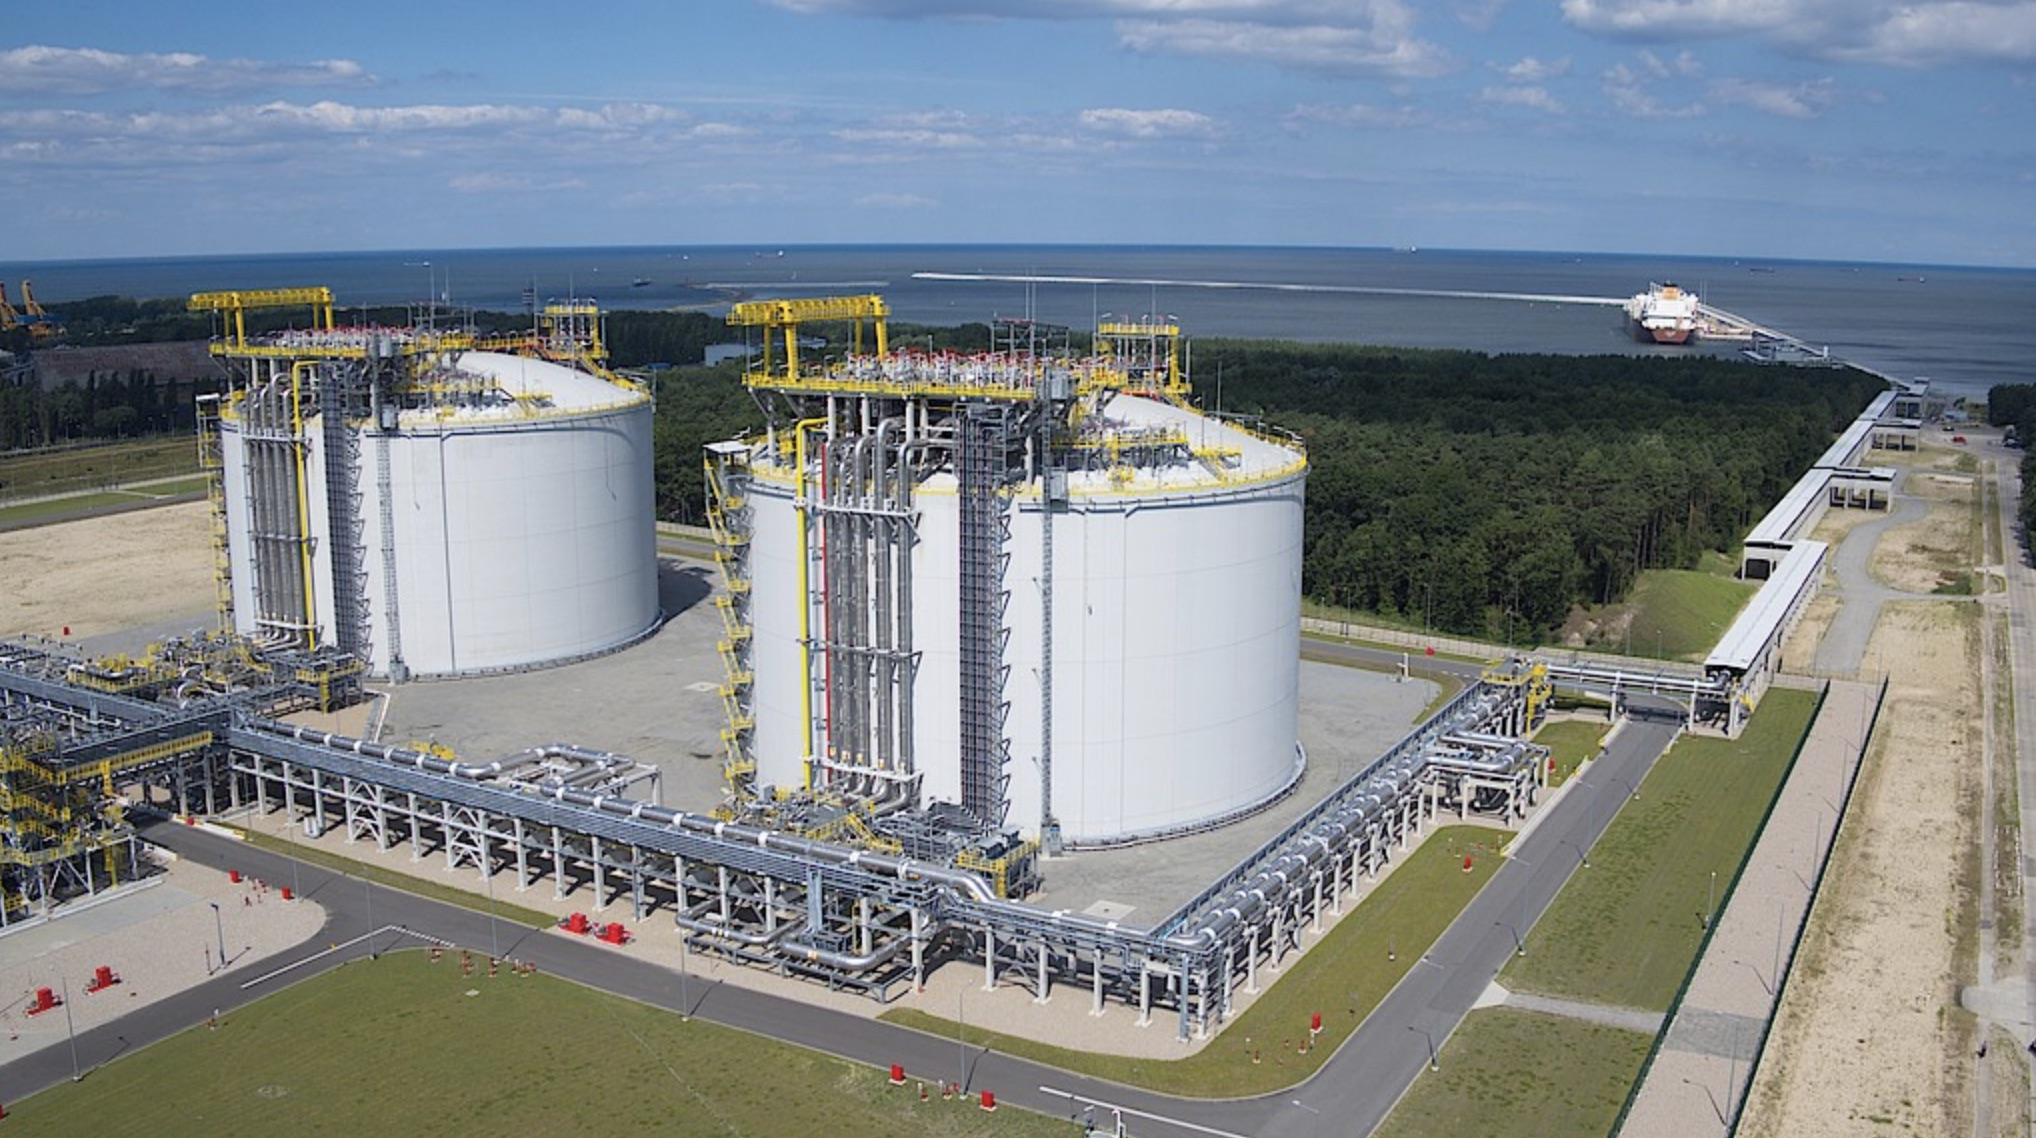 Contract for the extension of the Świnoujście LNG Terminal has been signed